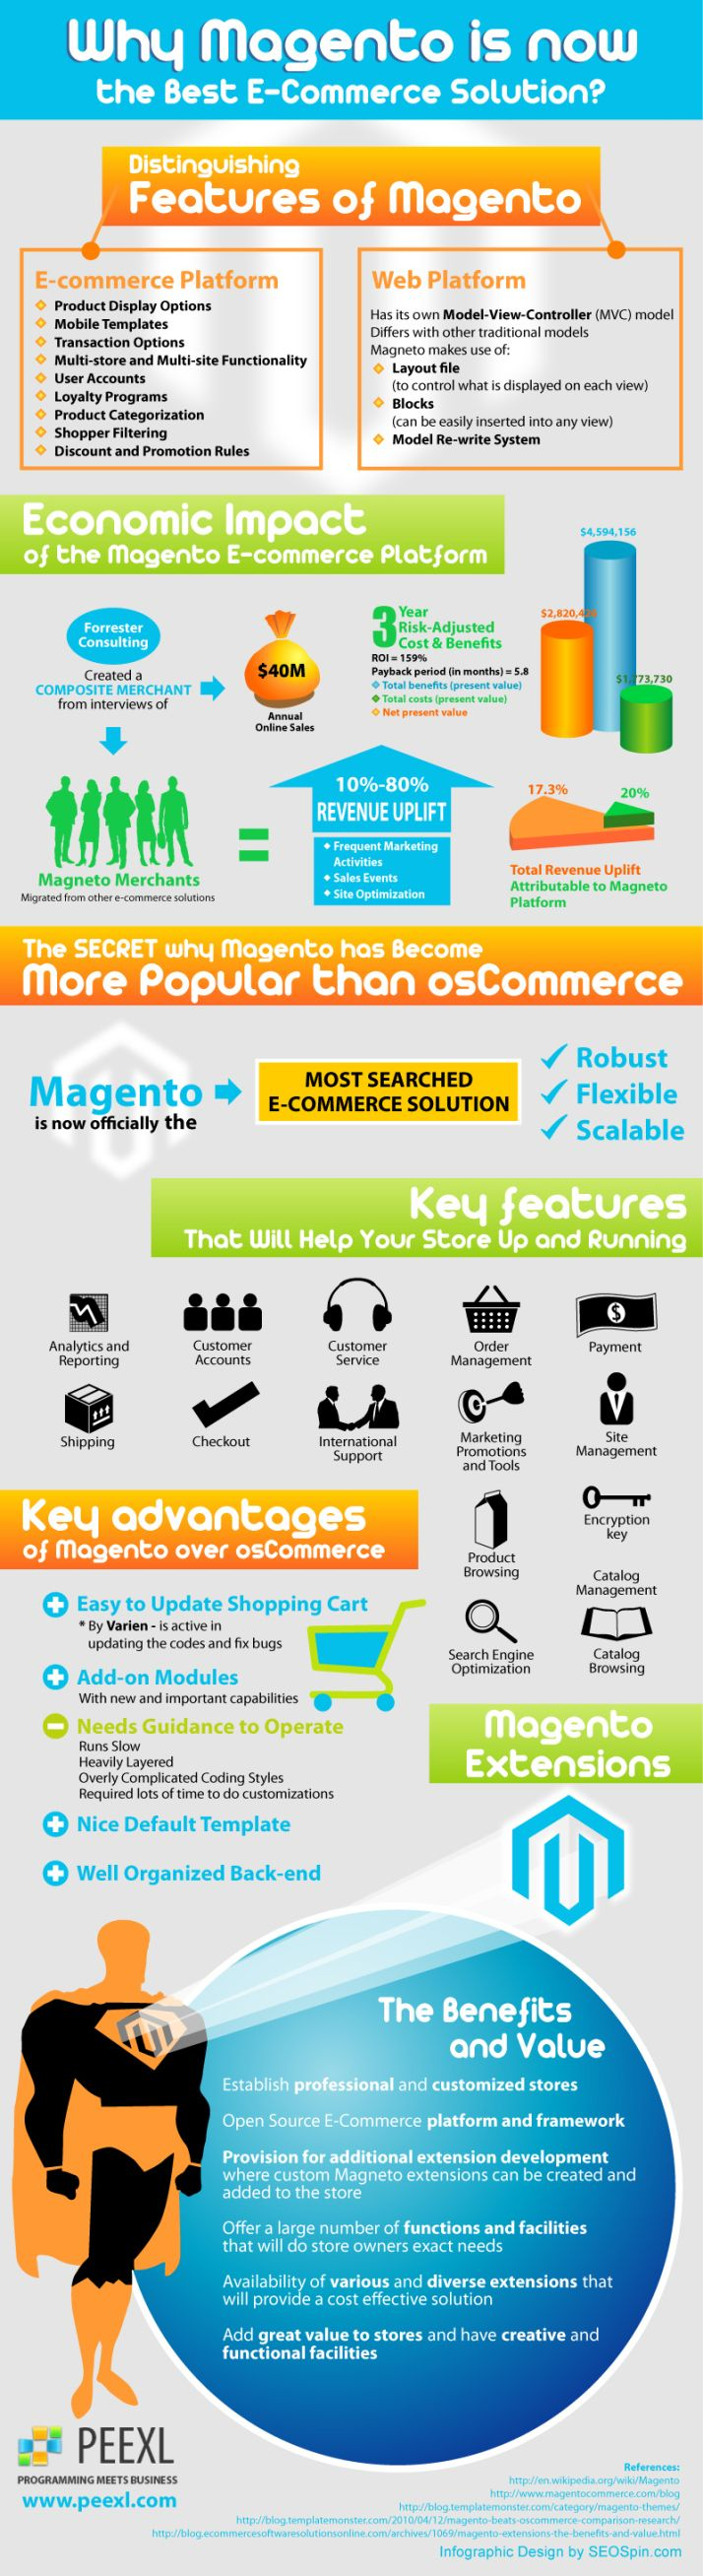 Why Magento is now the best ecommerce solution #infografia #infographic